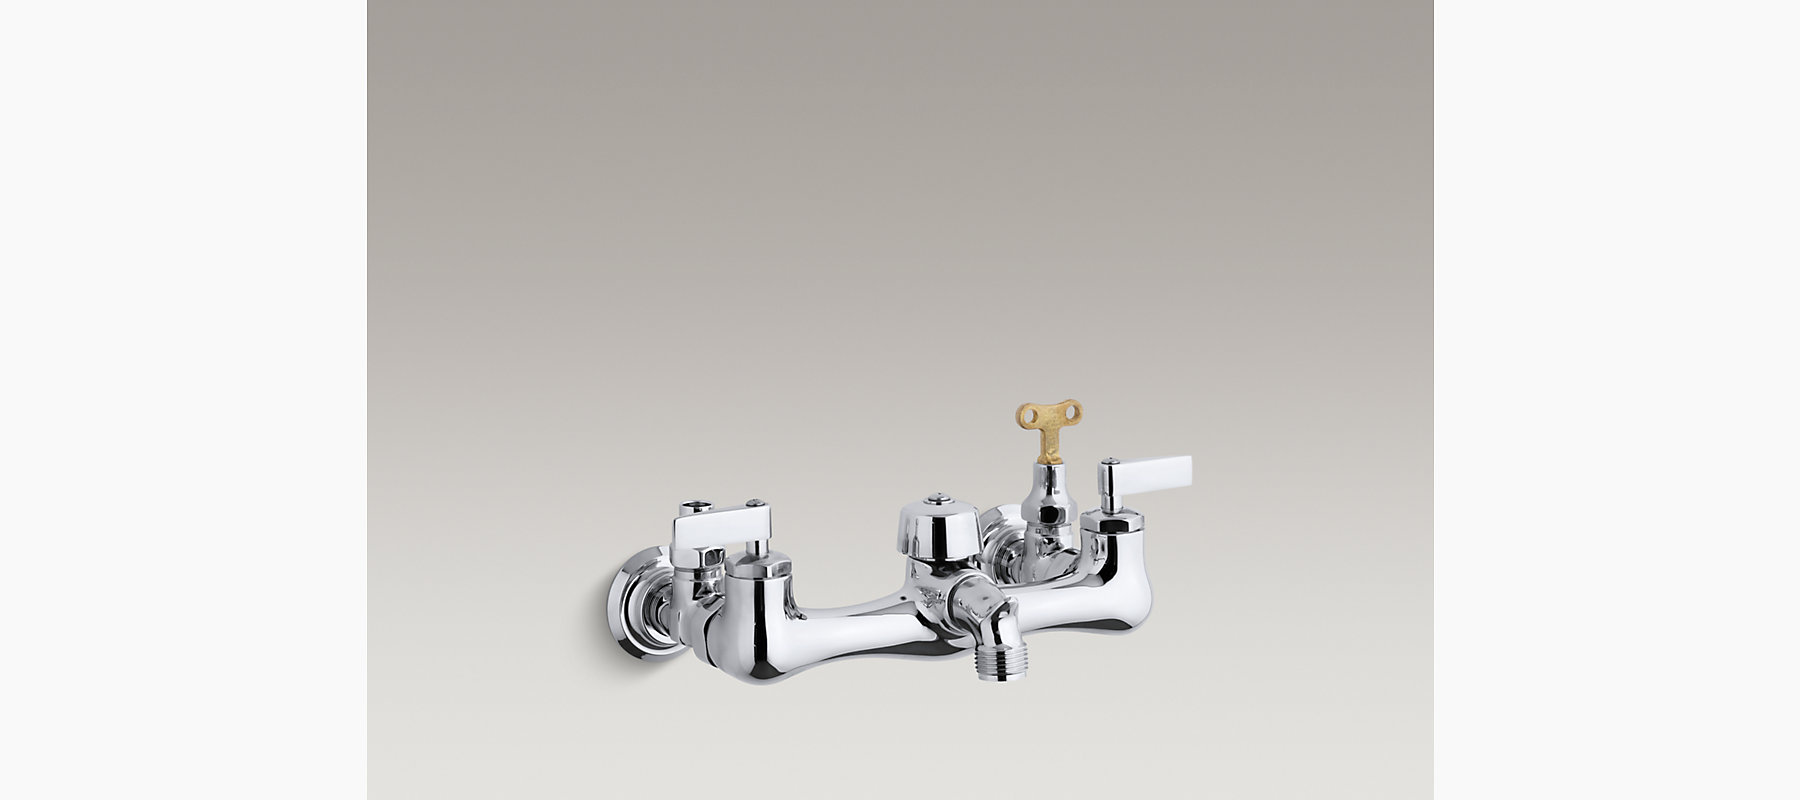 Knoxford double lever handle service sink faucet with loose-key ...